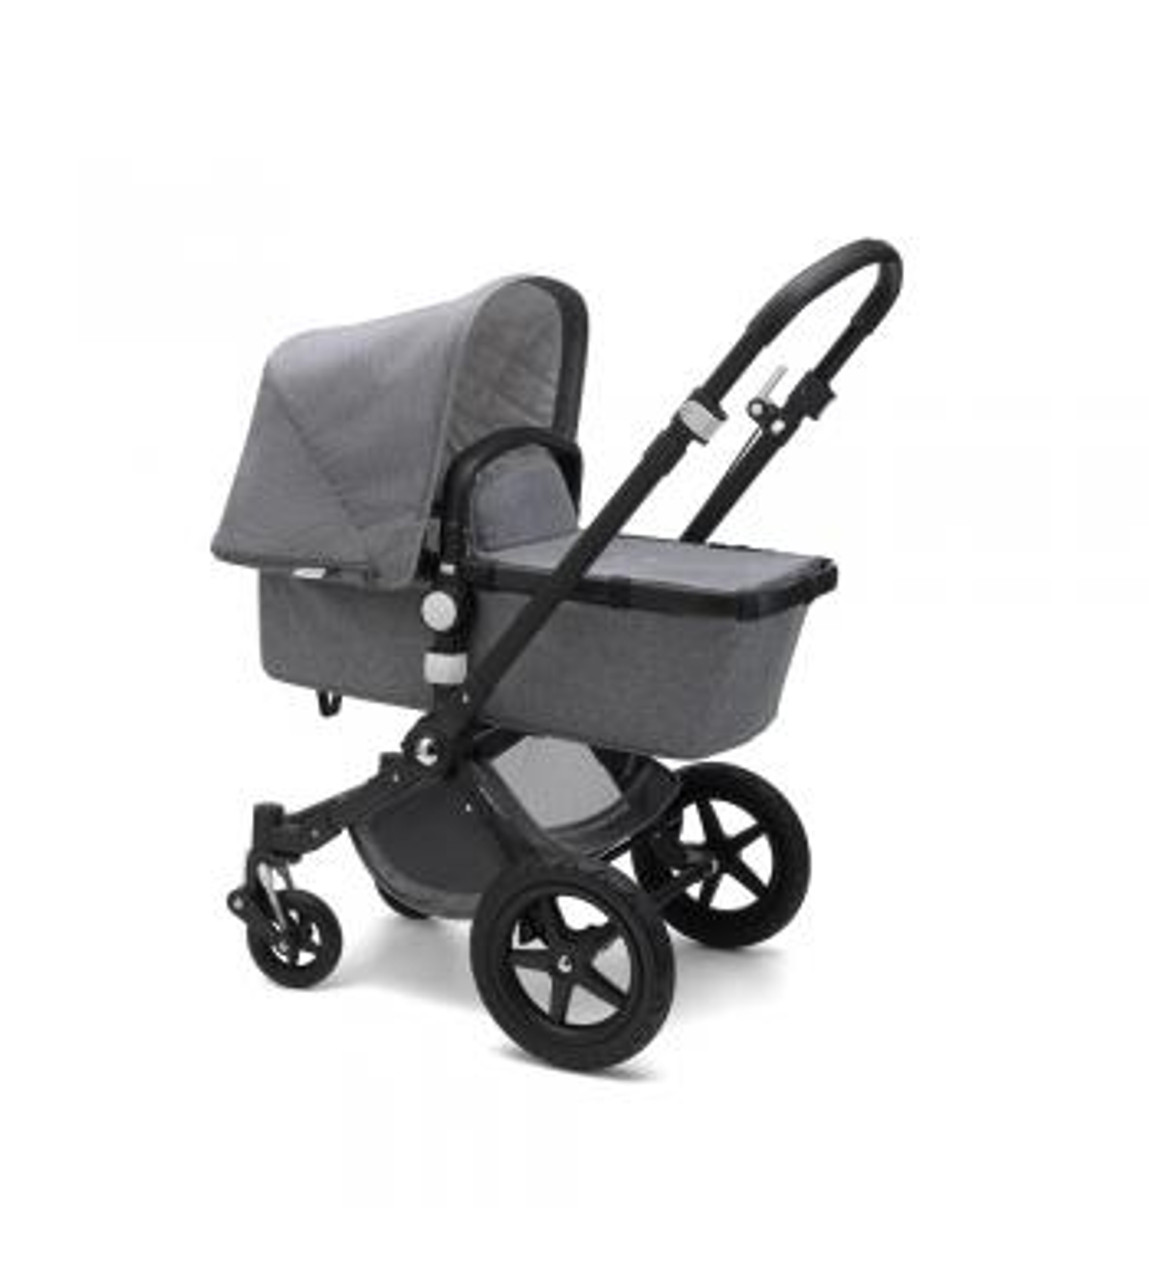 Bugaboo Cameleon 3 Maximum Weight Bugaboo Cameleon3 Plus Classic Complete Pushchair Grey Melange